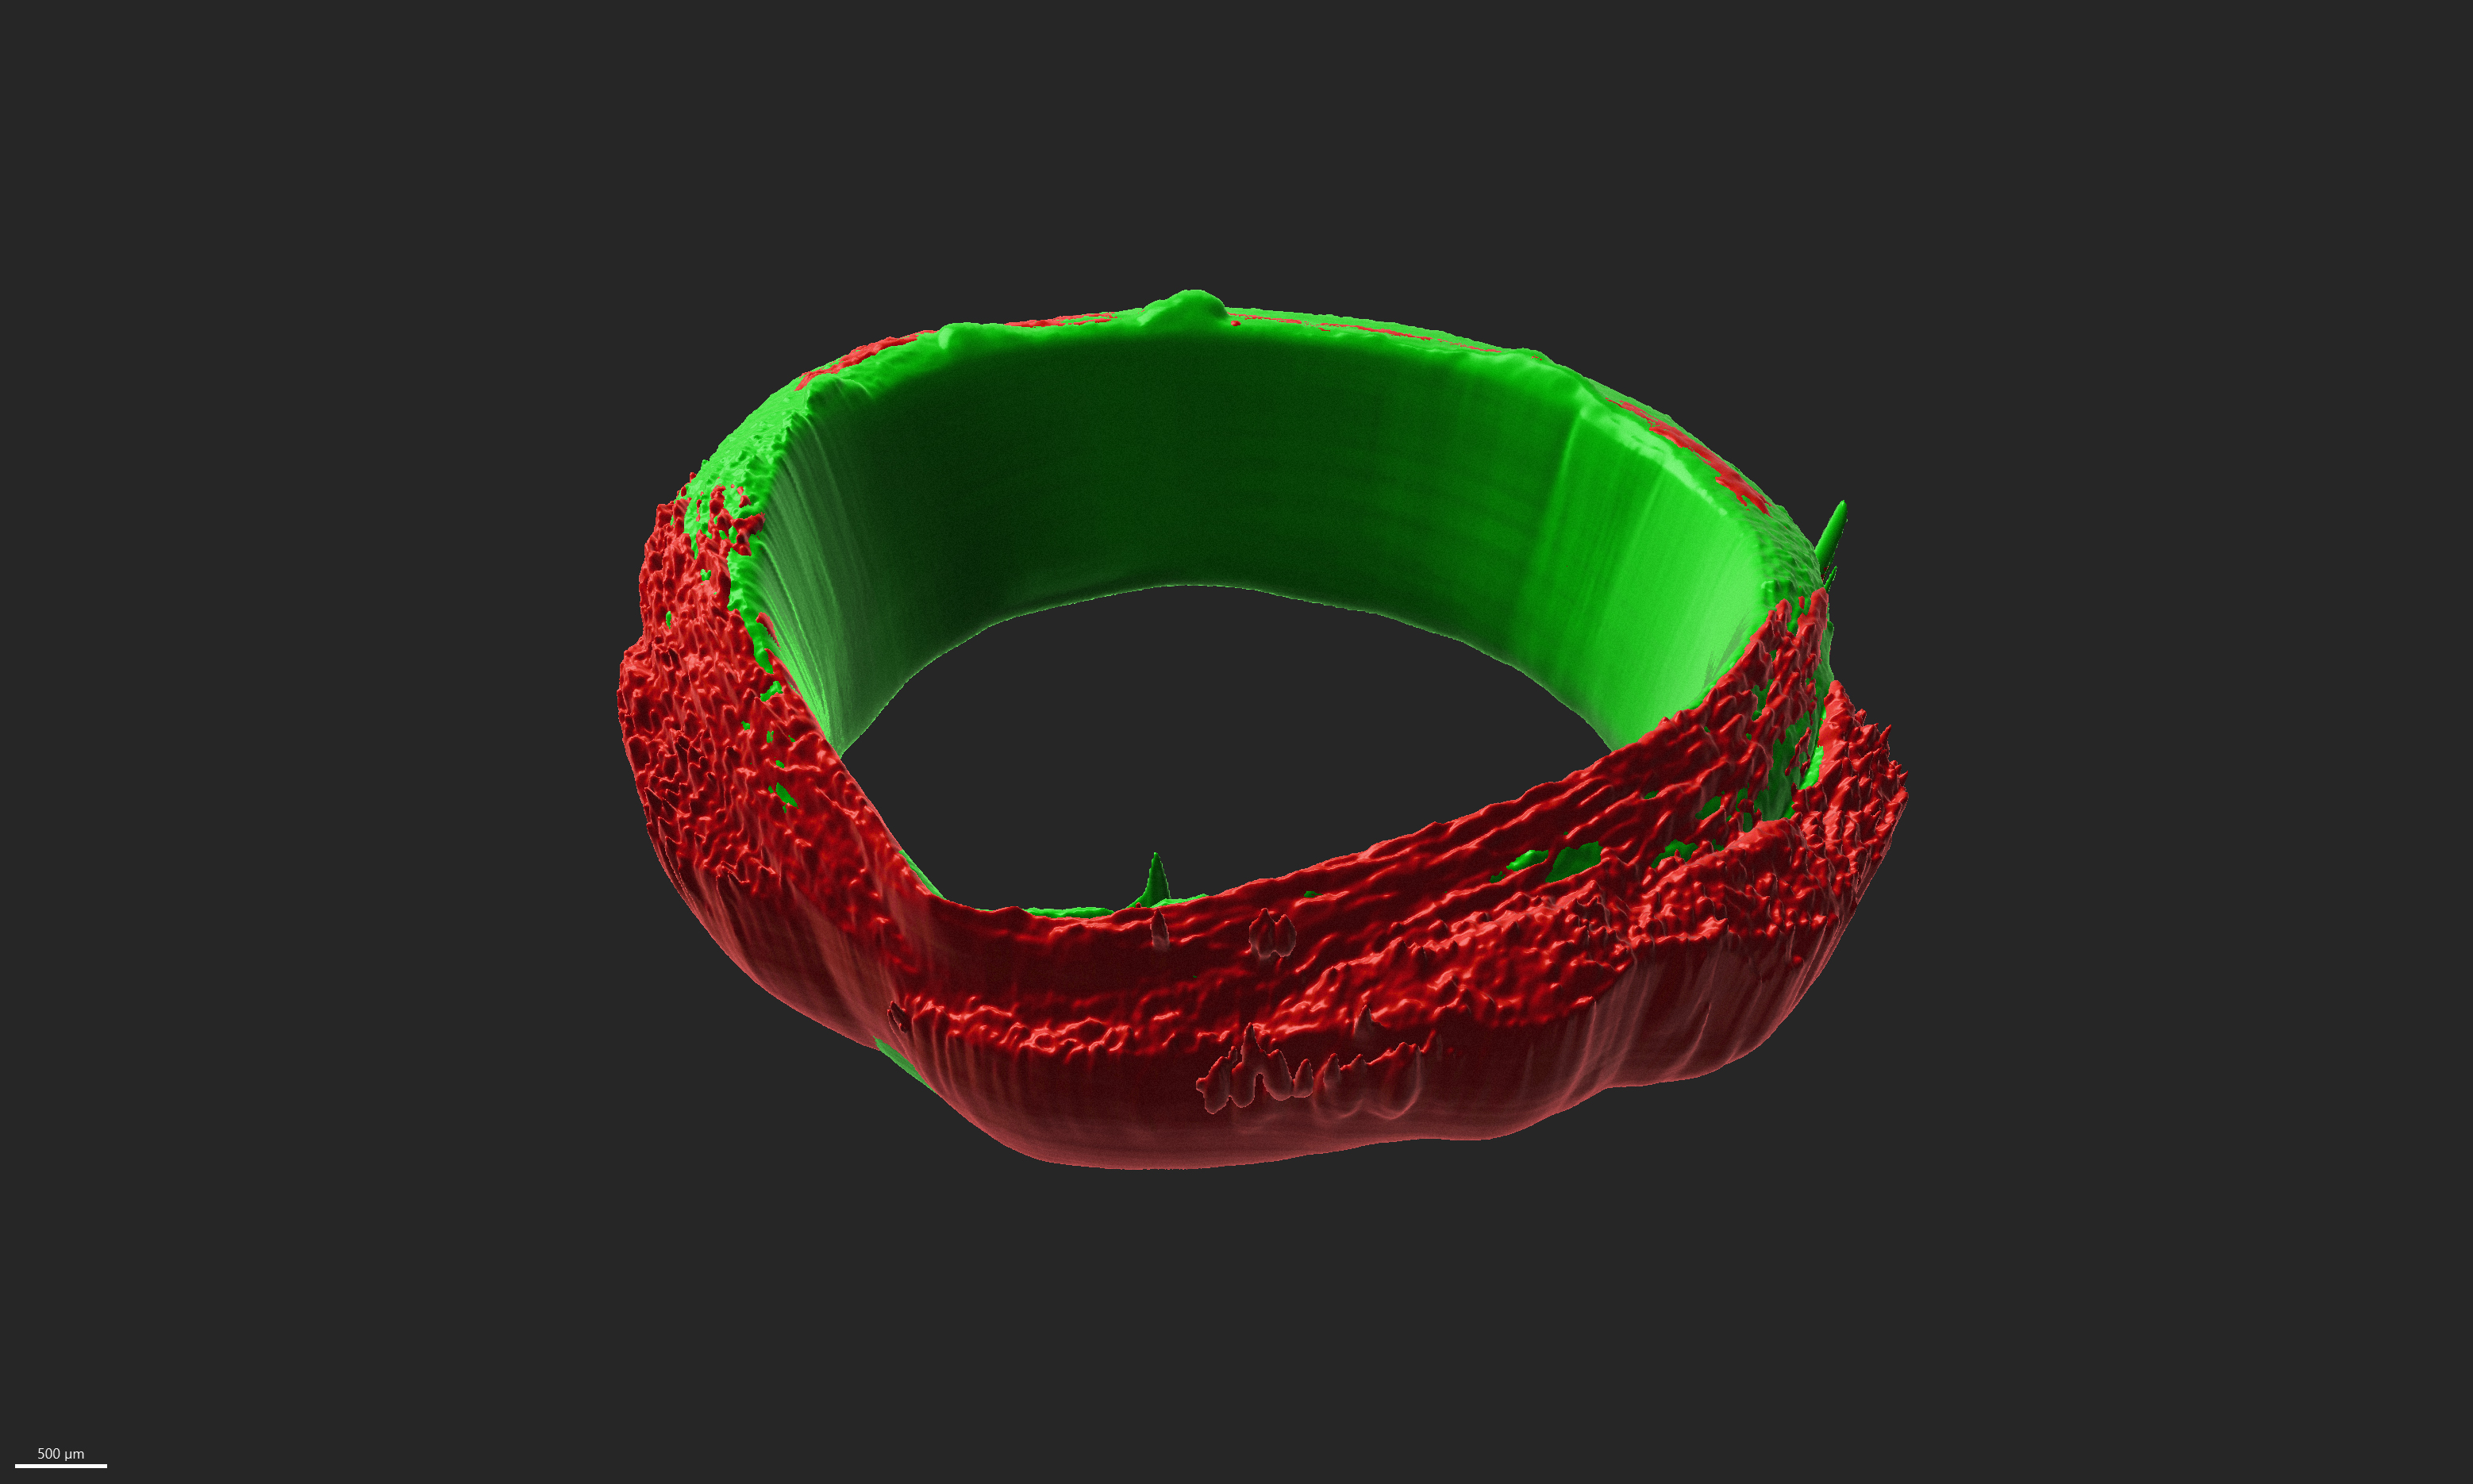 skeletal muscle ring-shaped tissues